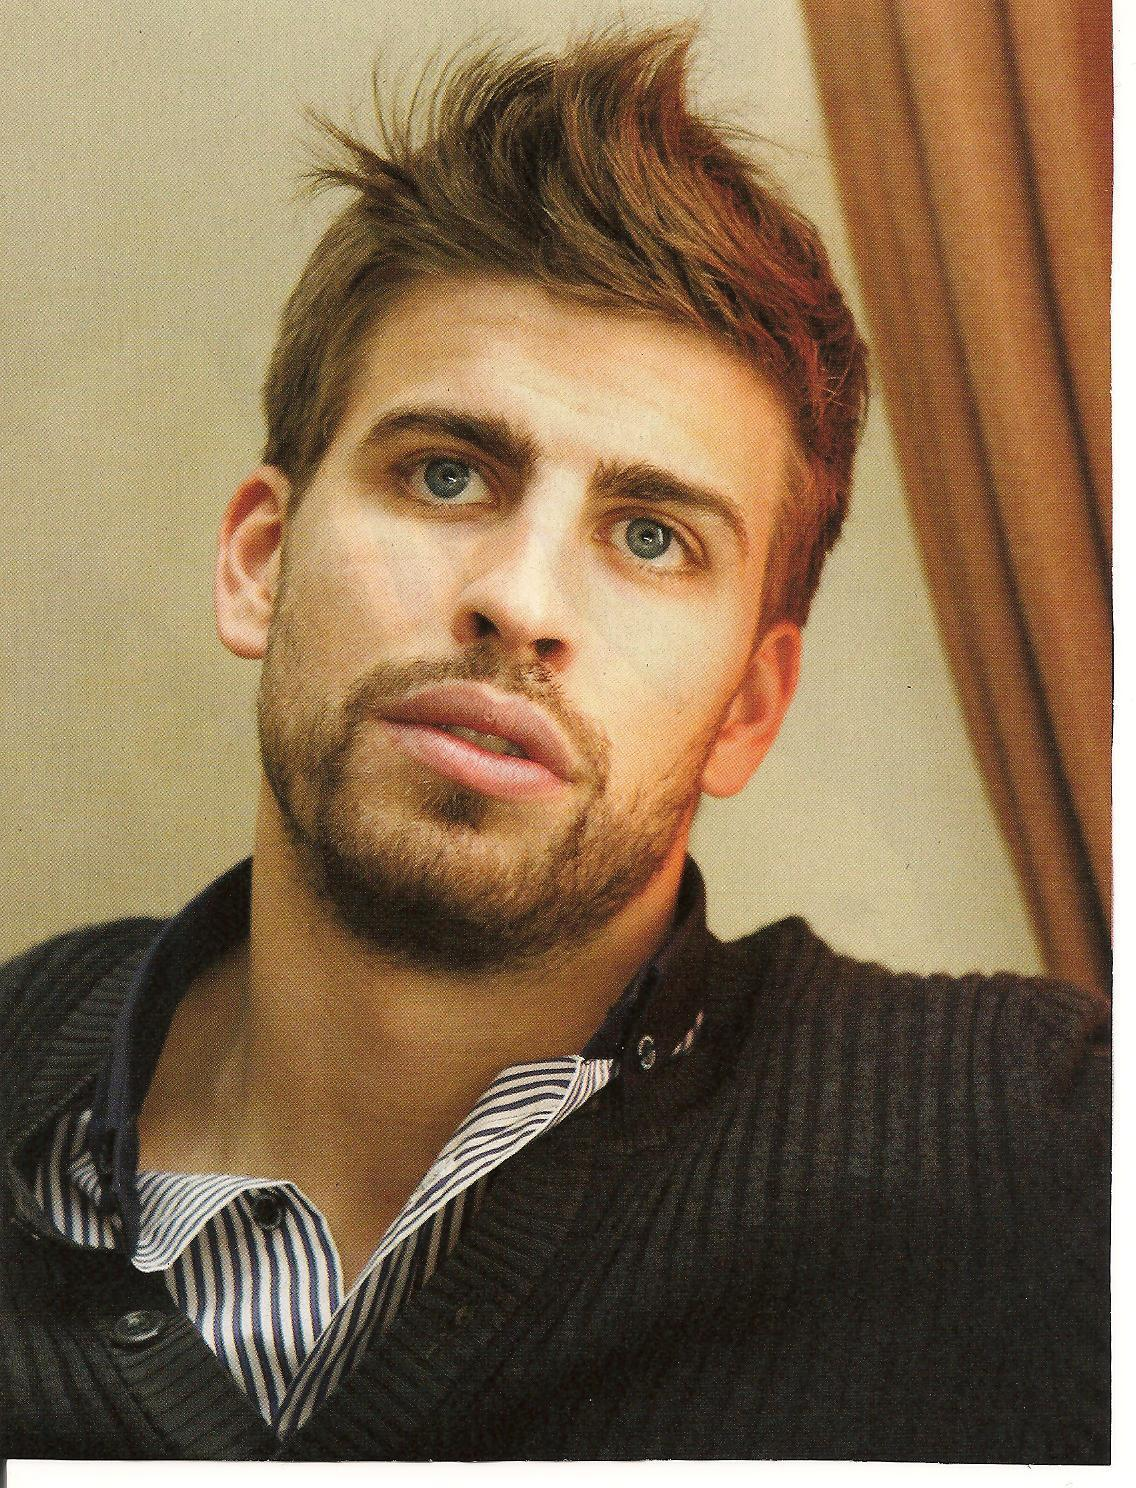 PK - Gerard Piqué Photo (9577752) - Fanpop: www.fanpop.com/clubs/gerard-pique/images/9577752/title/pk-photo